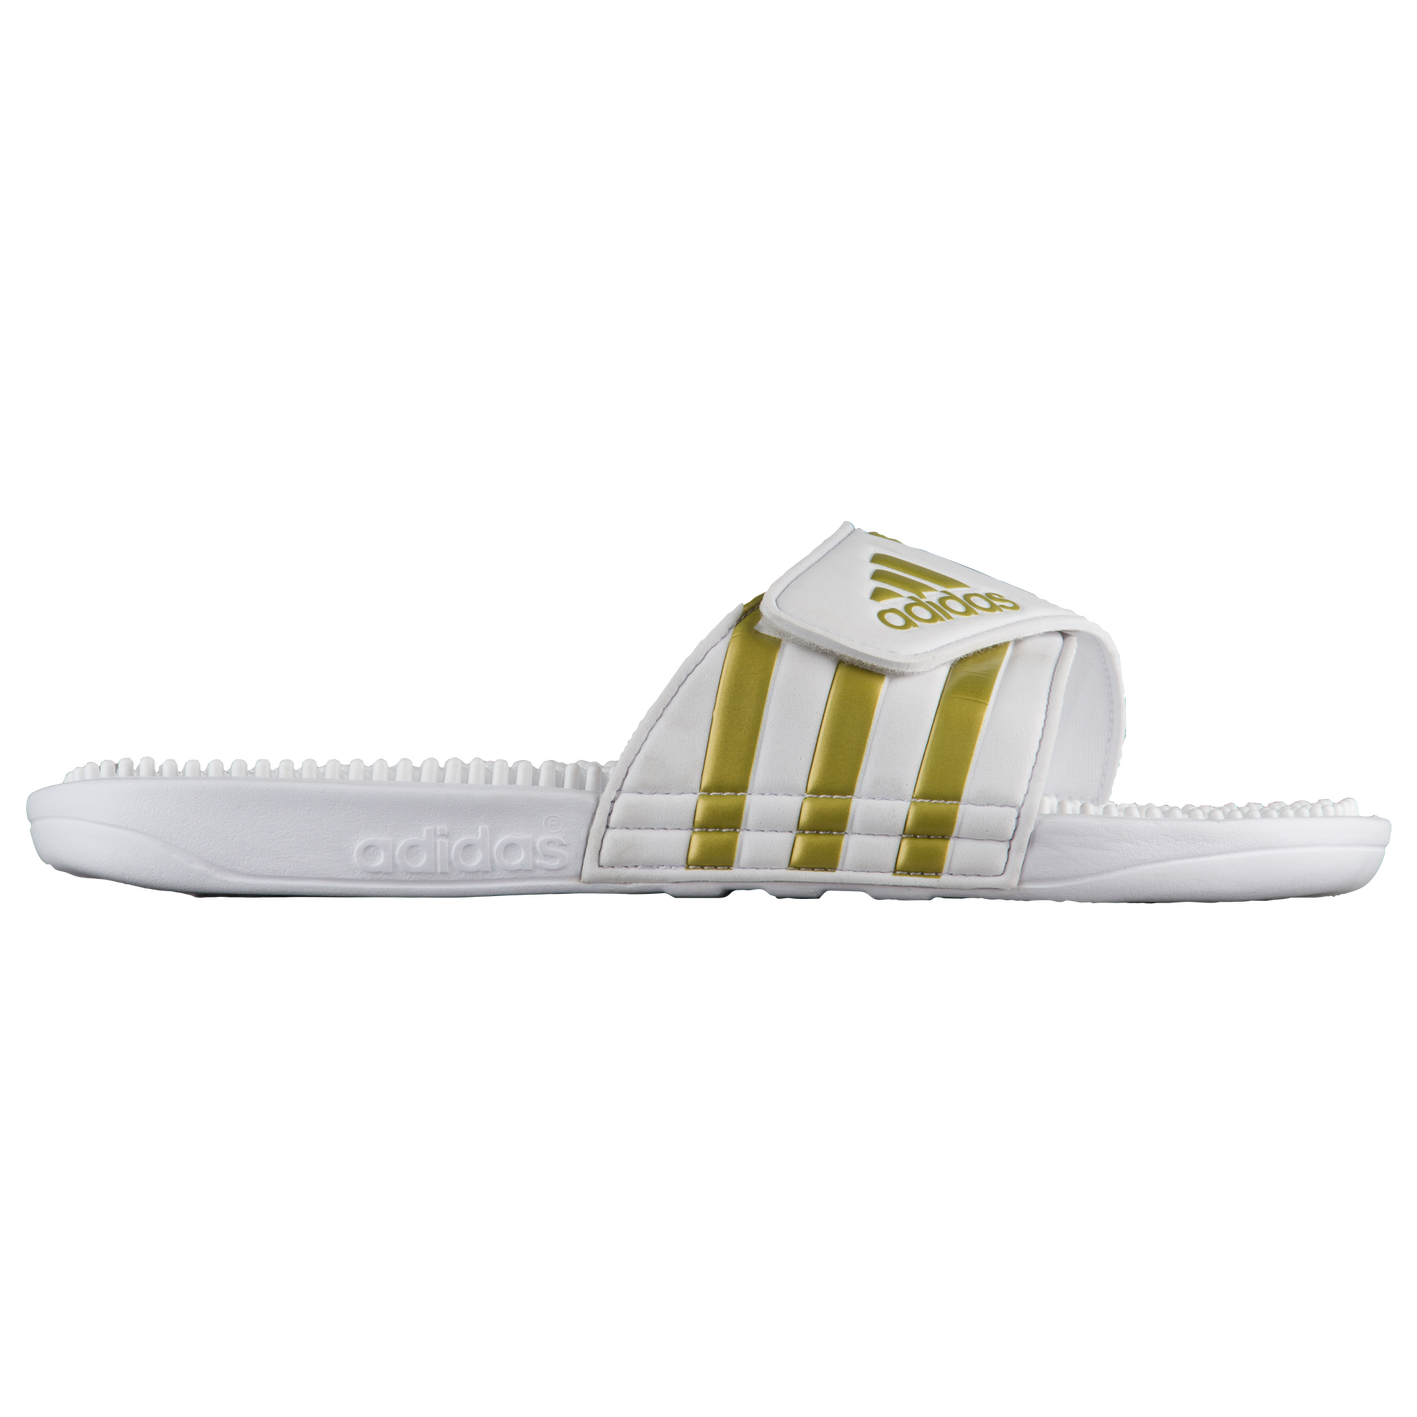 597ae4a8f adidas Adissage Slide - Men s - Casual - Shoes - White Gold Metallic ...